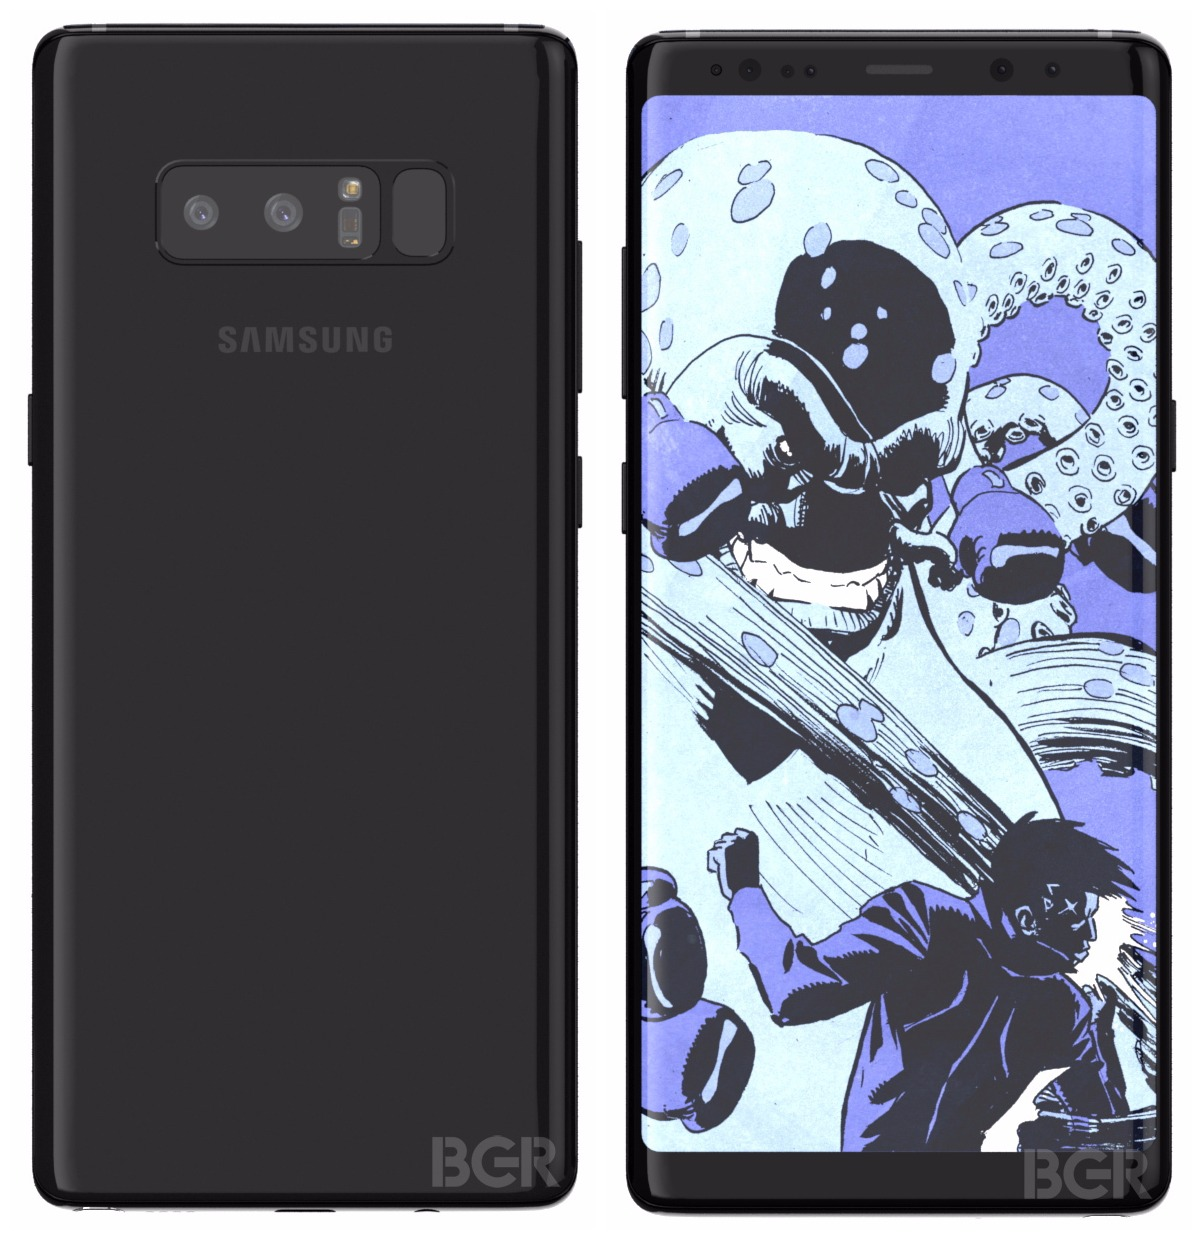 Samsung Galaxy Note8 leak 2